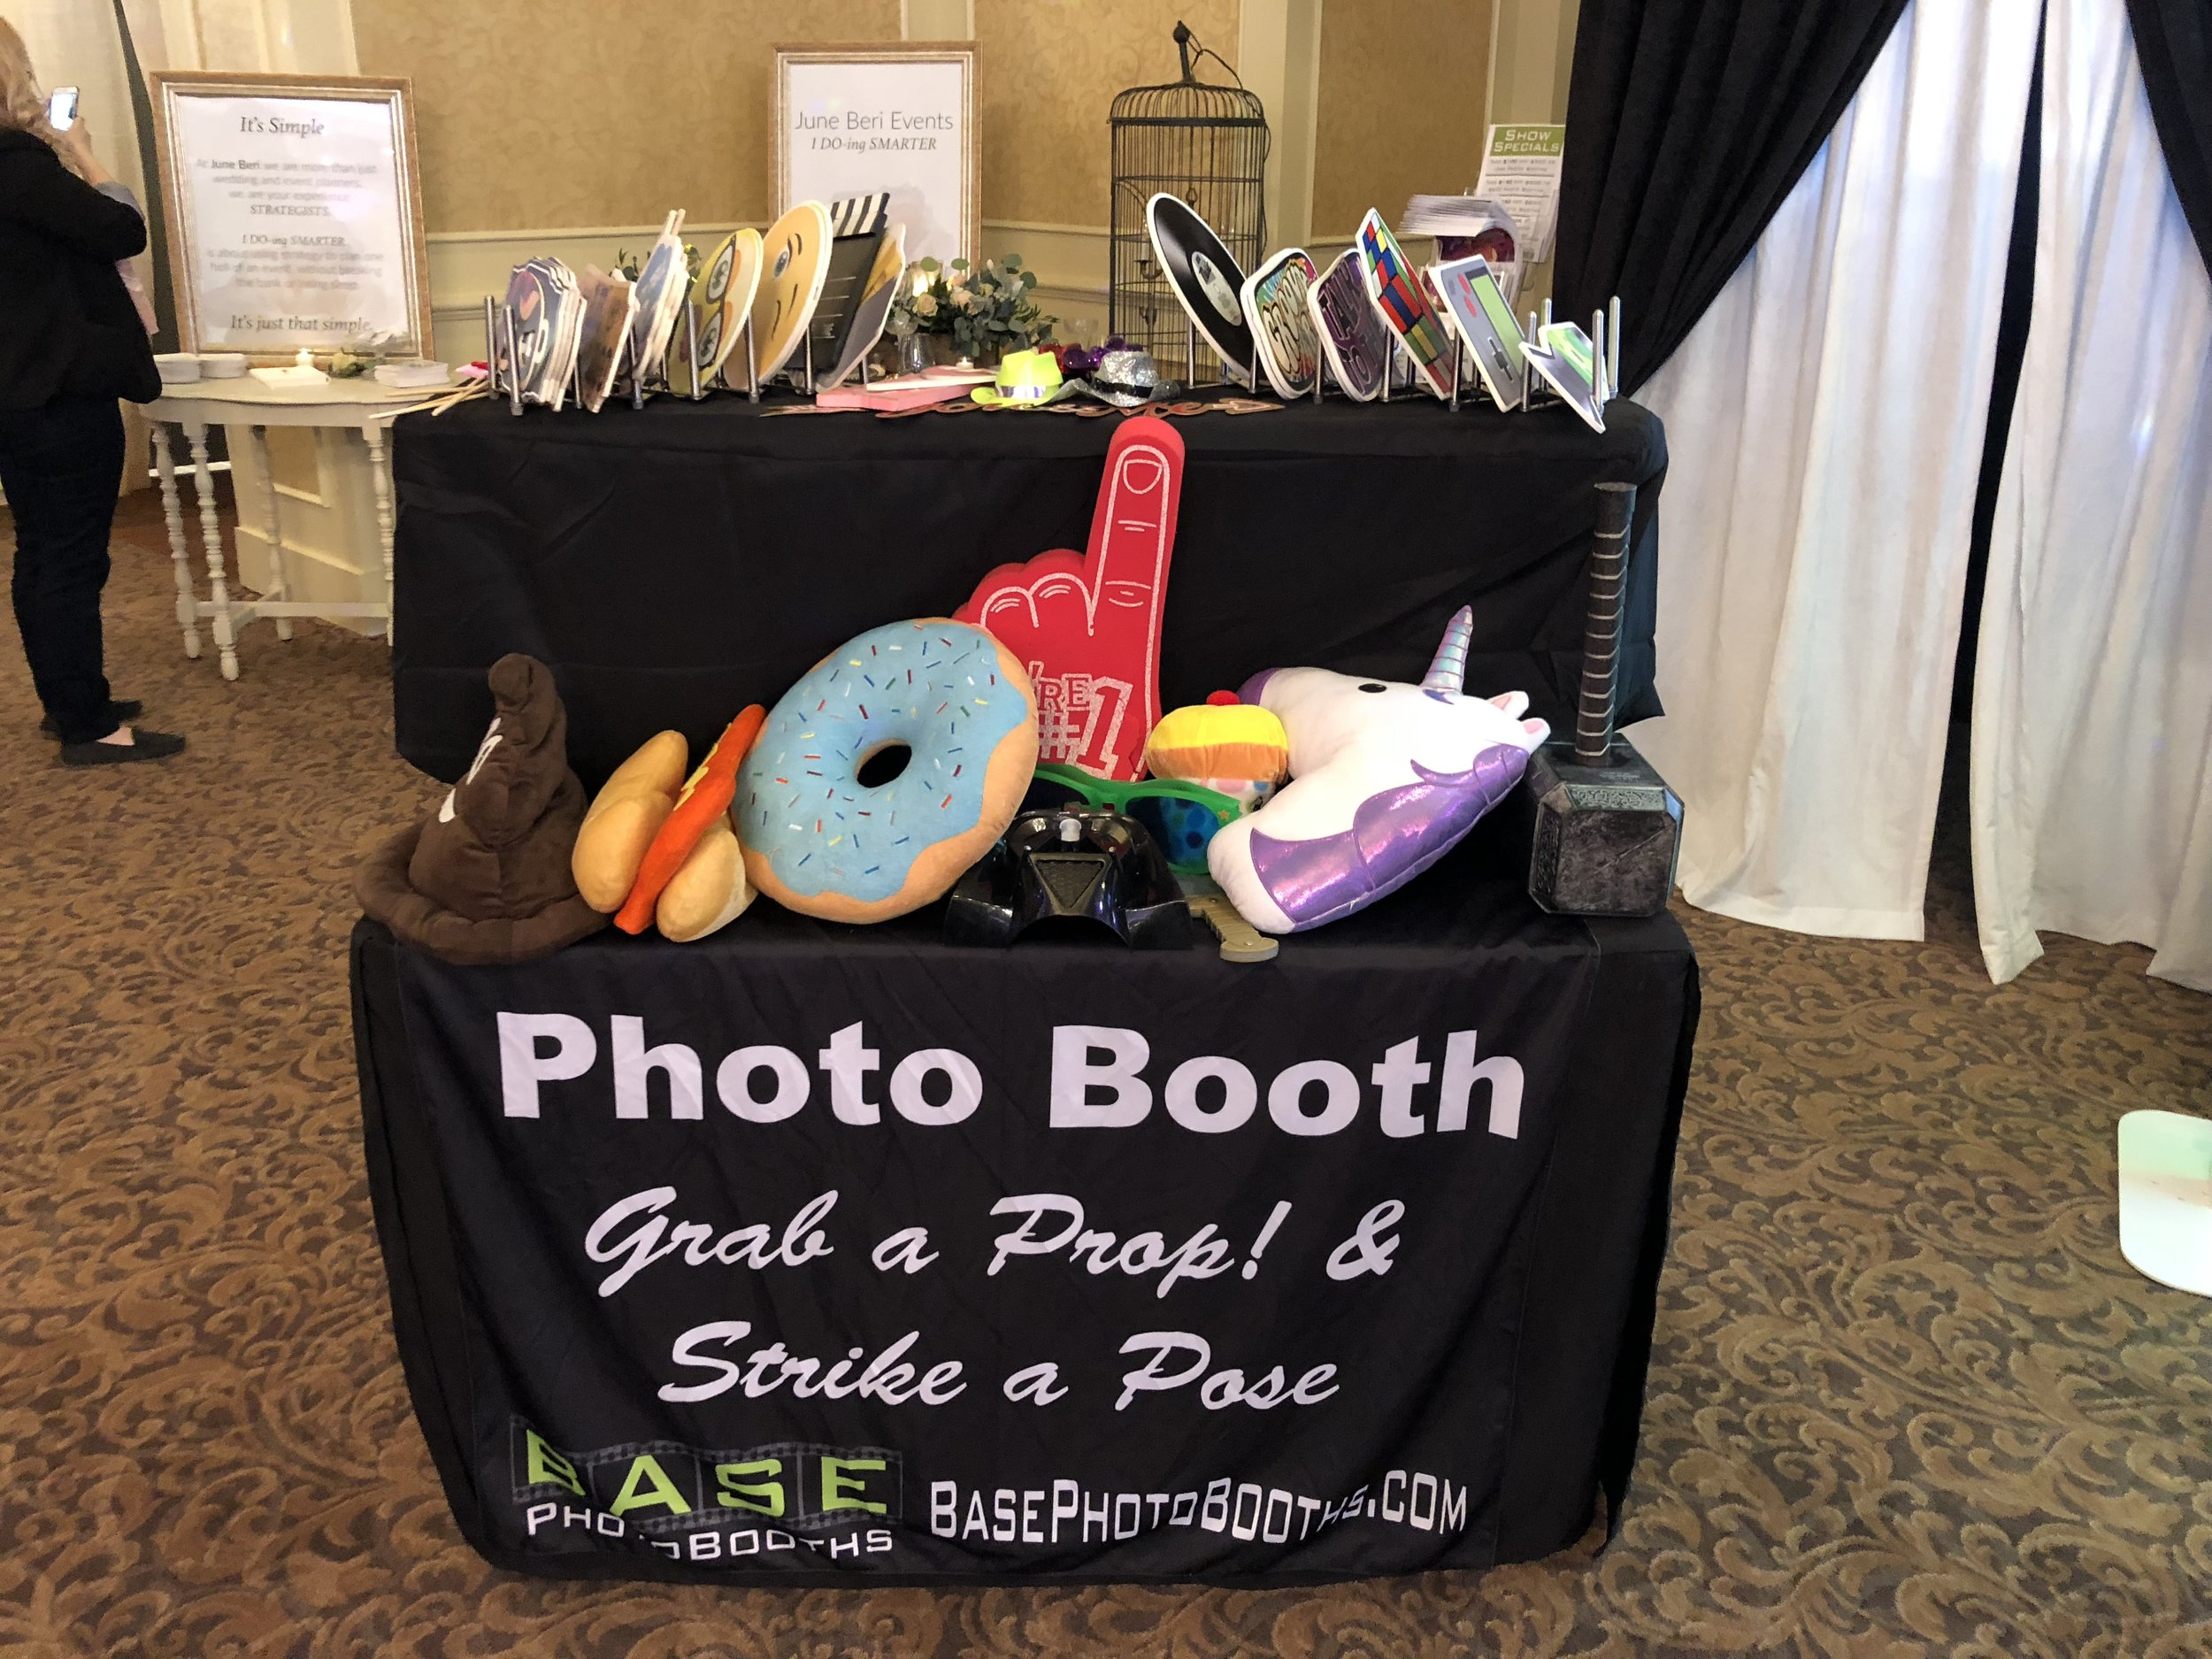 Free Premium Props - An Entire Two Tiered Props Table with Signs, Hats, Foam Fingers, Thor Hammers, and More.